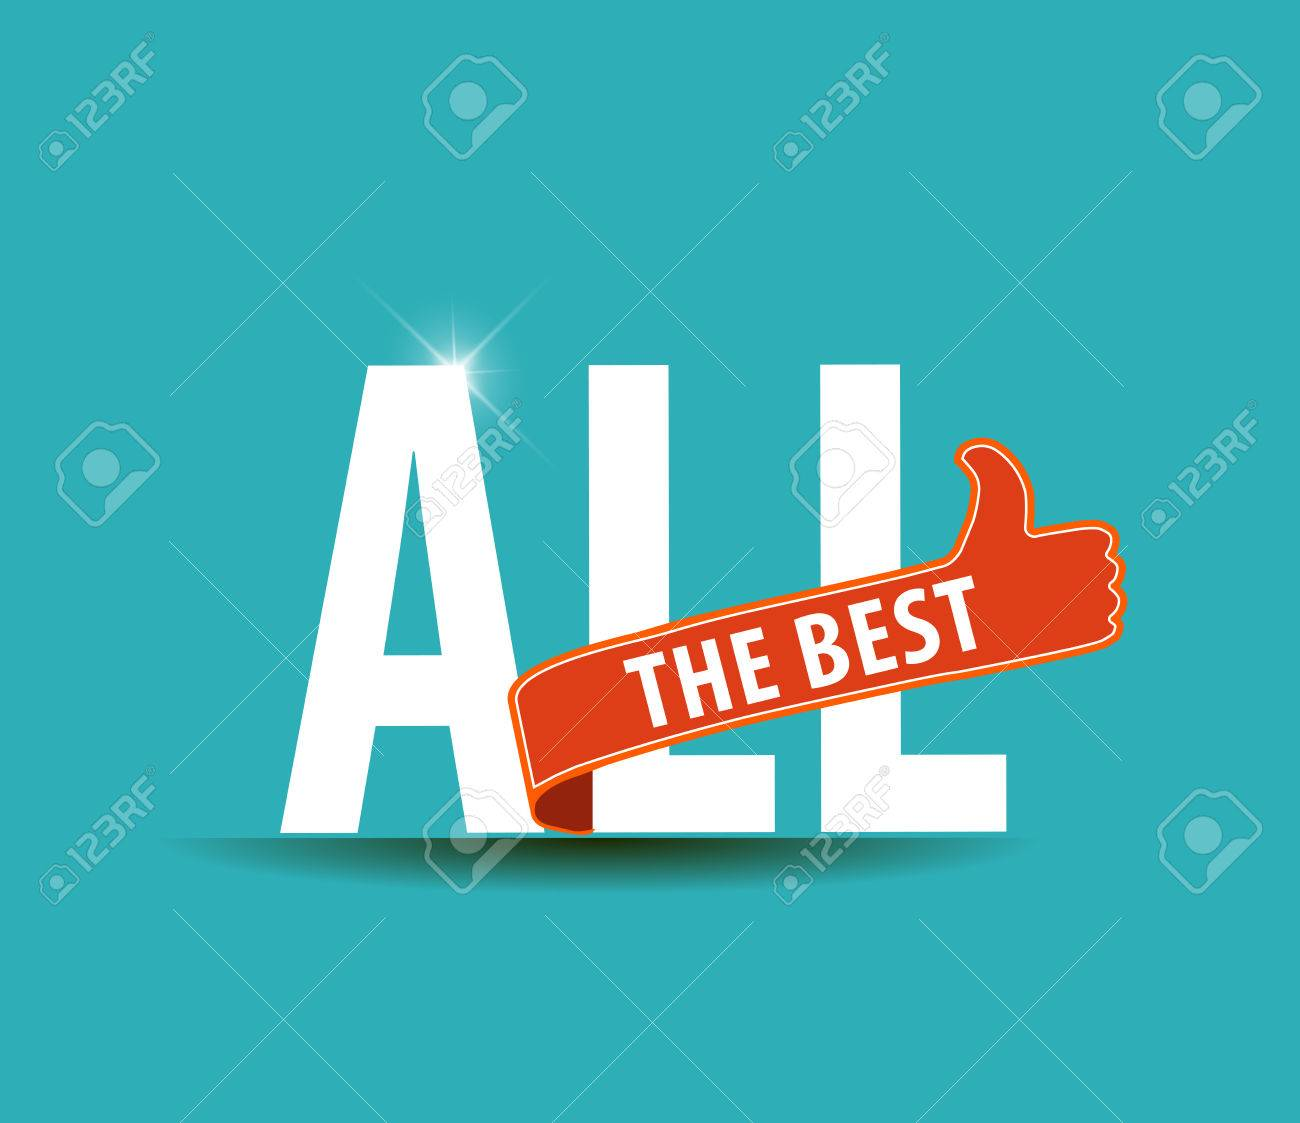 All the best motivational graphic for best wishes, good luck - vector eps10 - 46272146